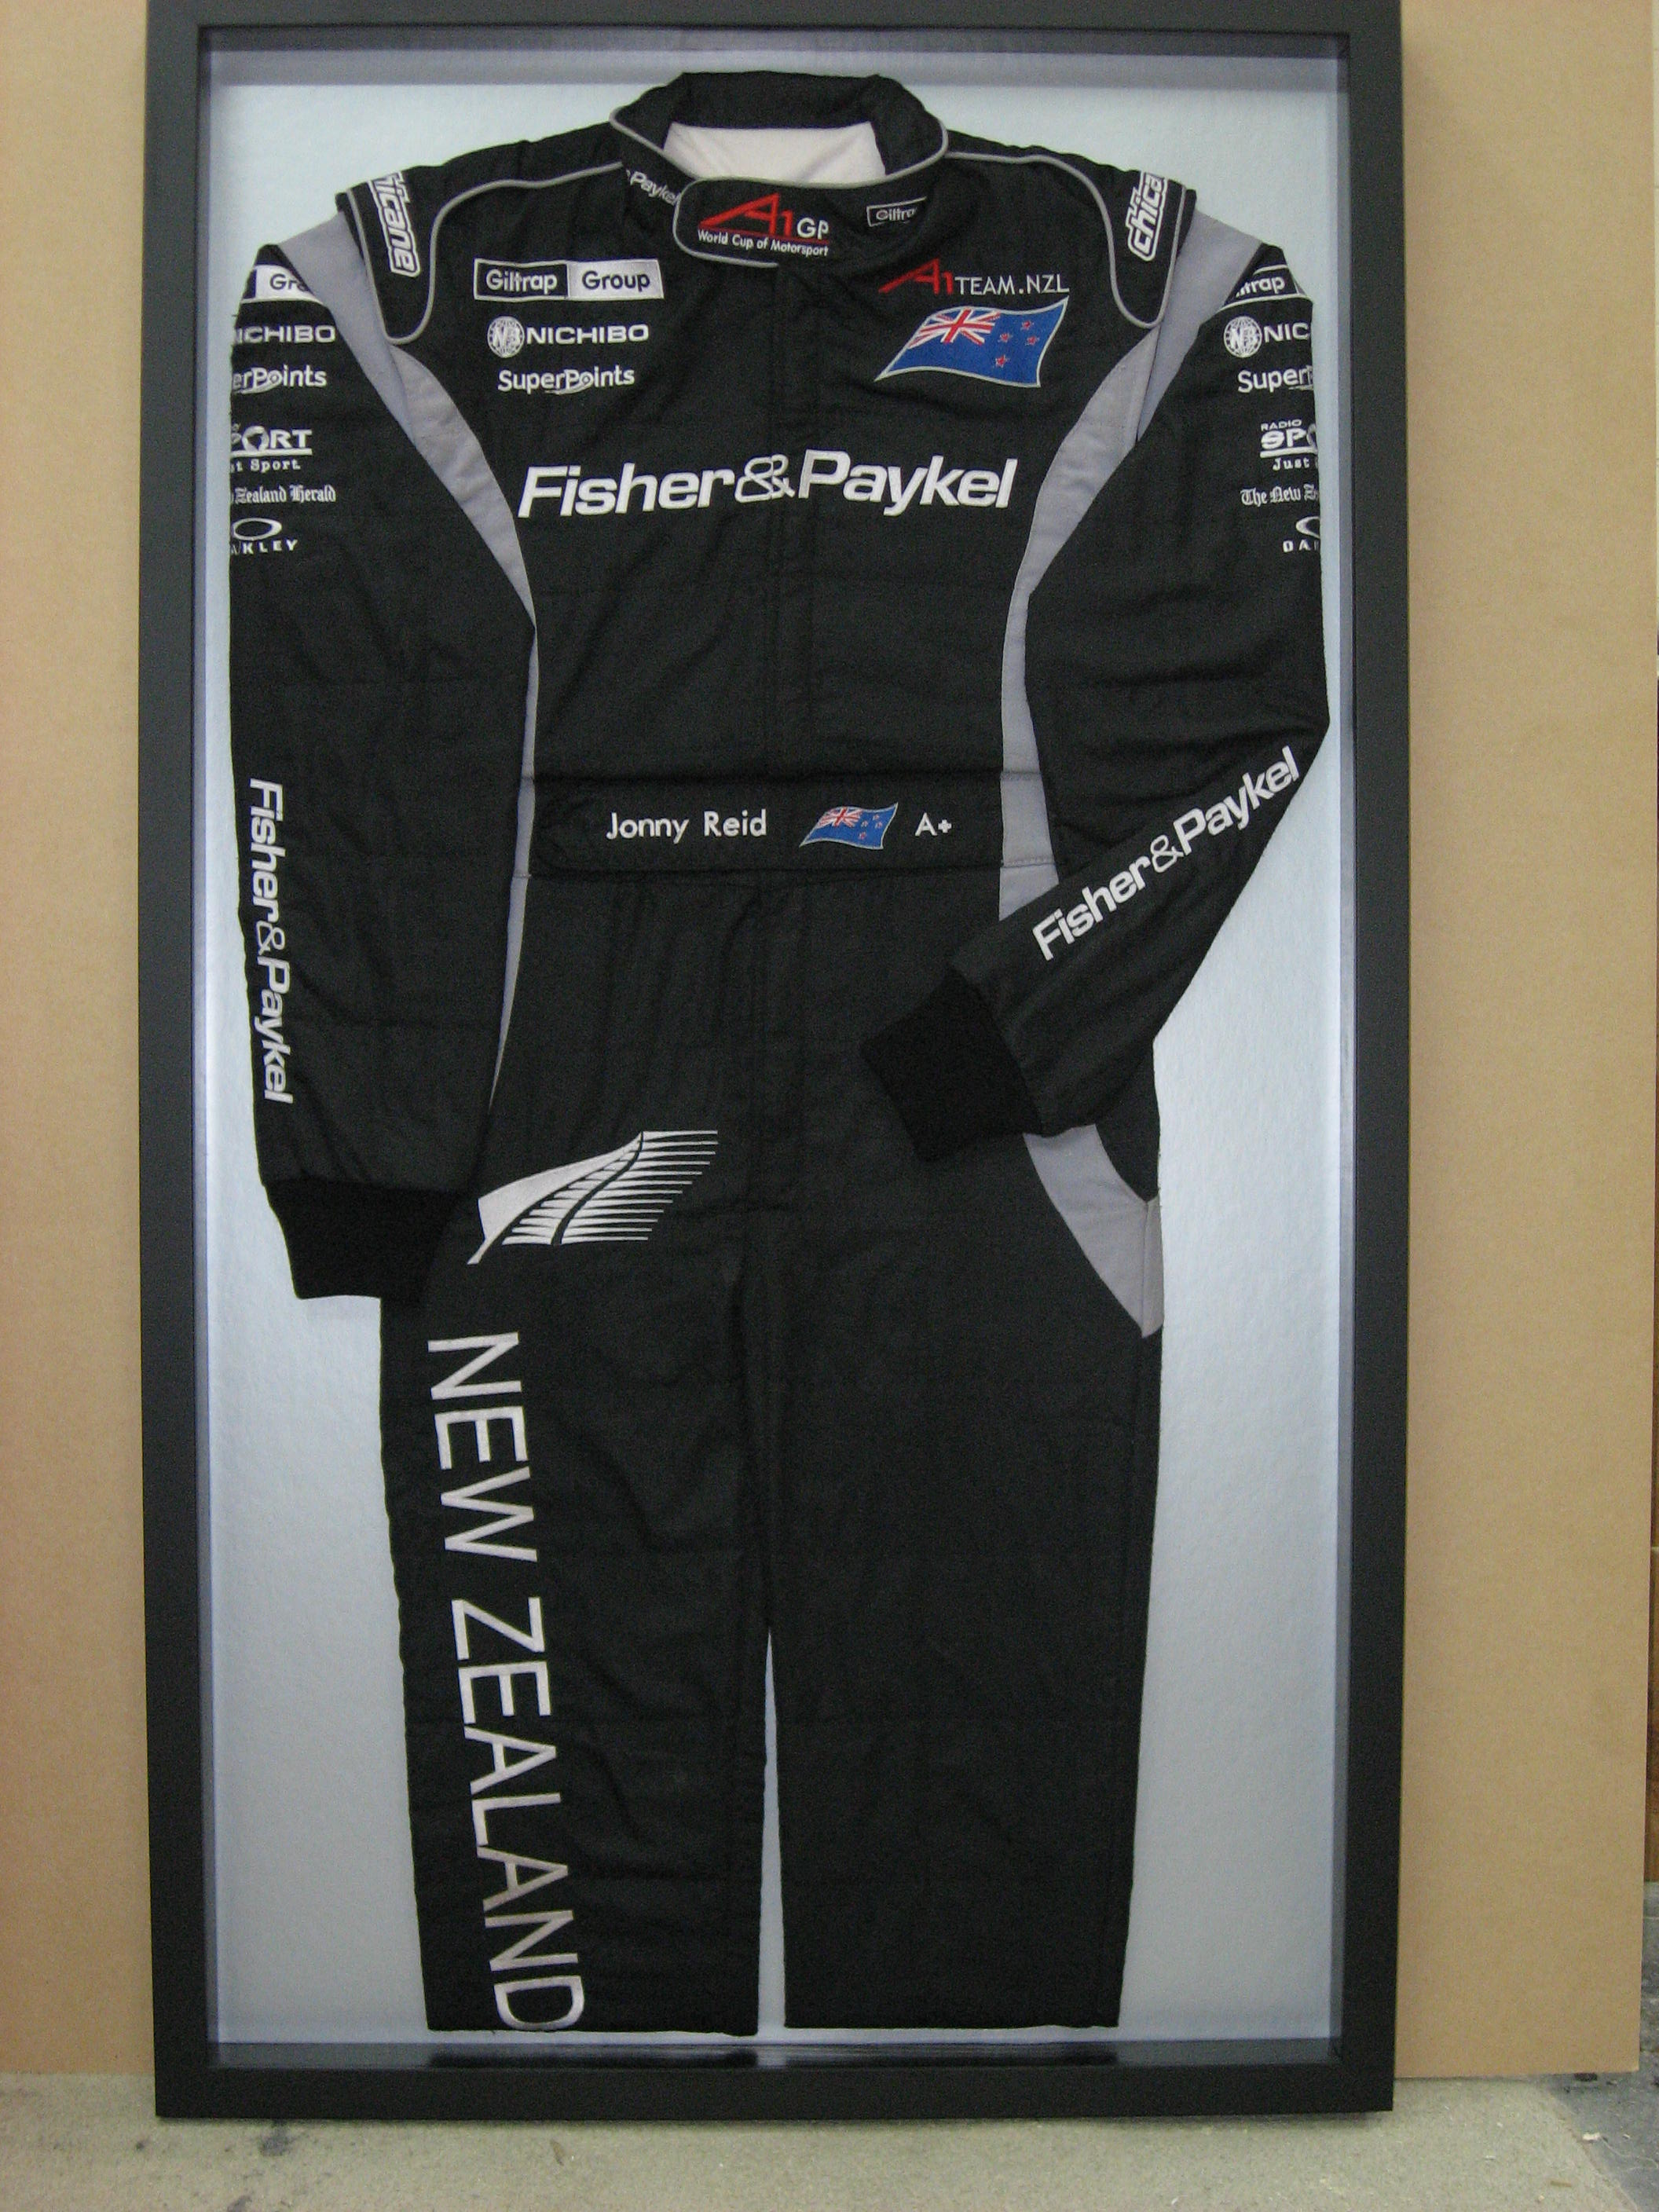 View of the framed sportswear